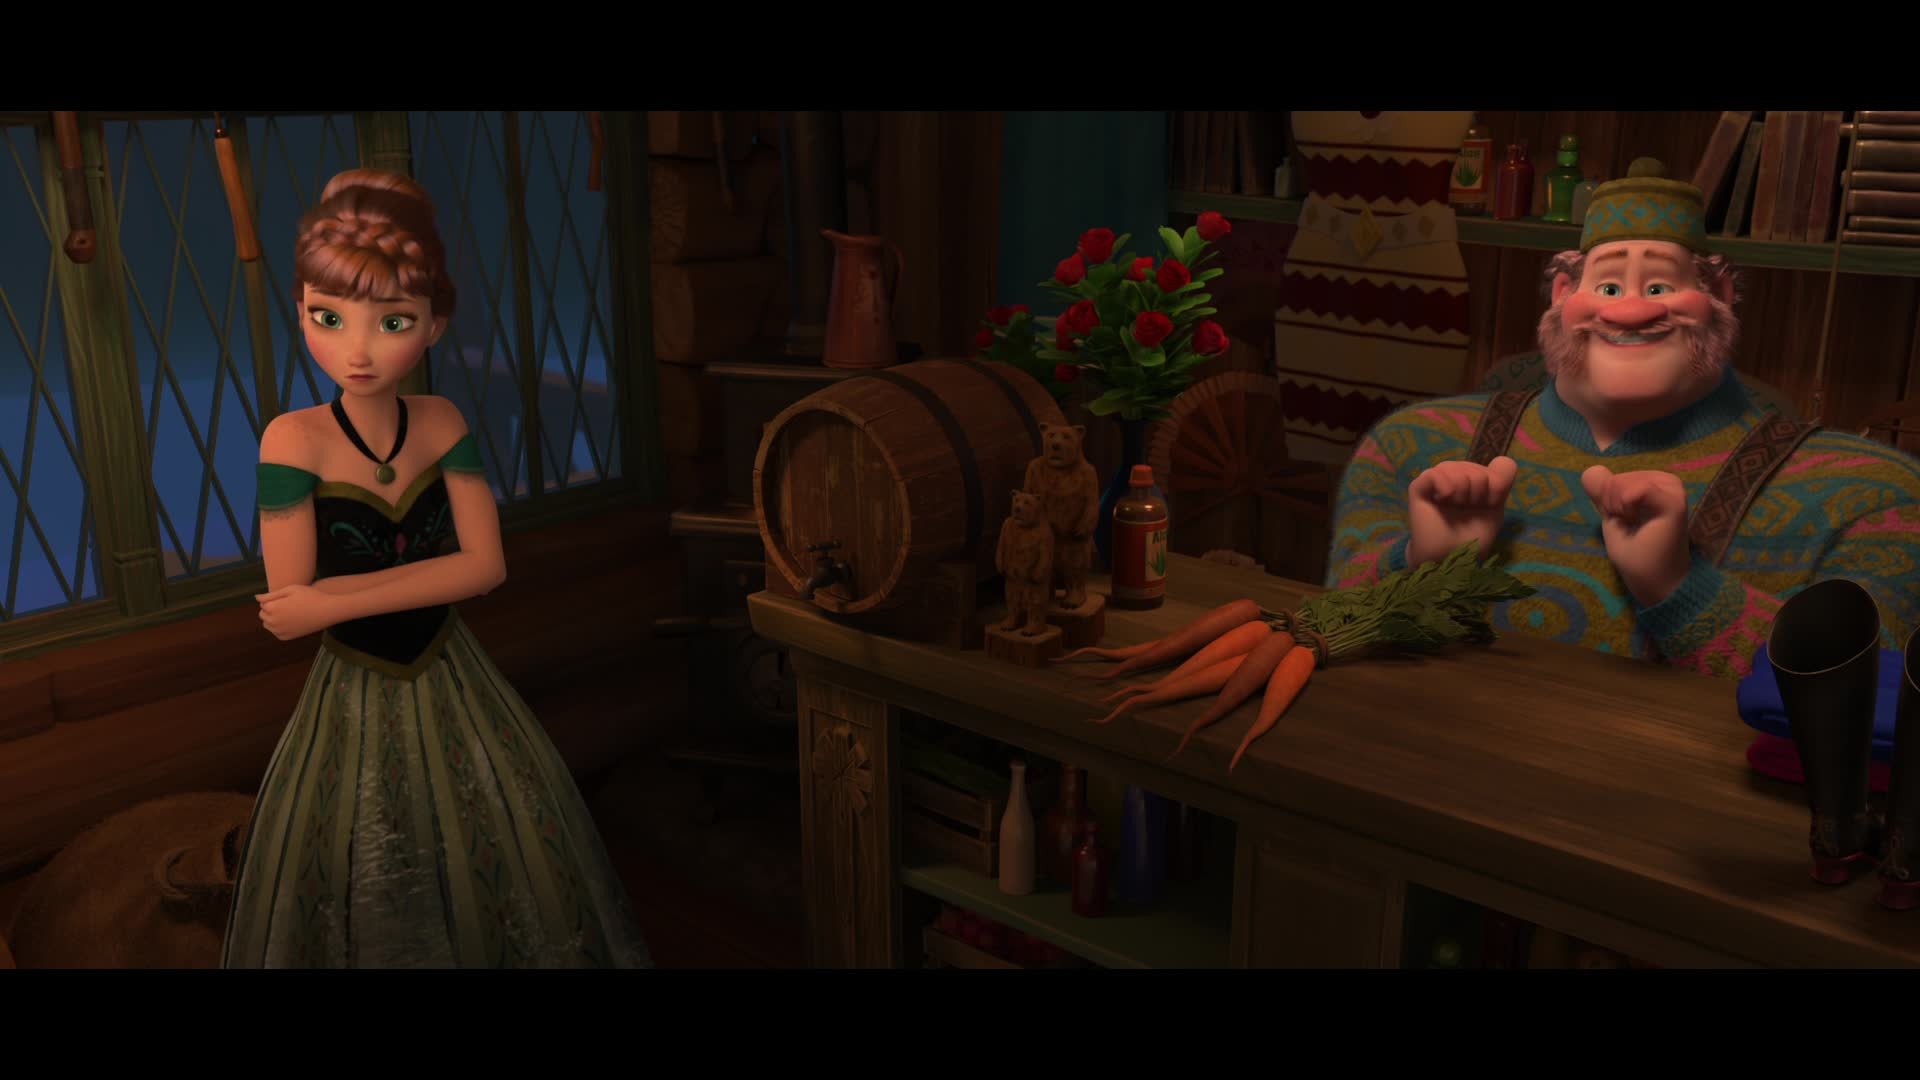 Screenshots frozen - Telechargement de la reine des neiges ...